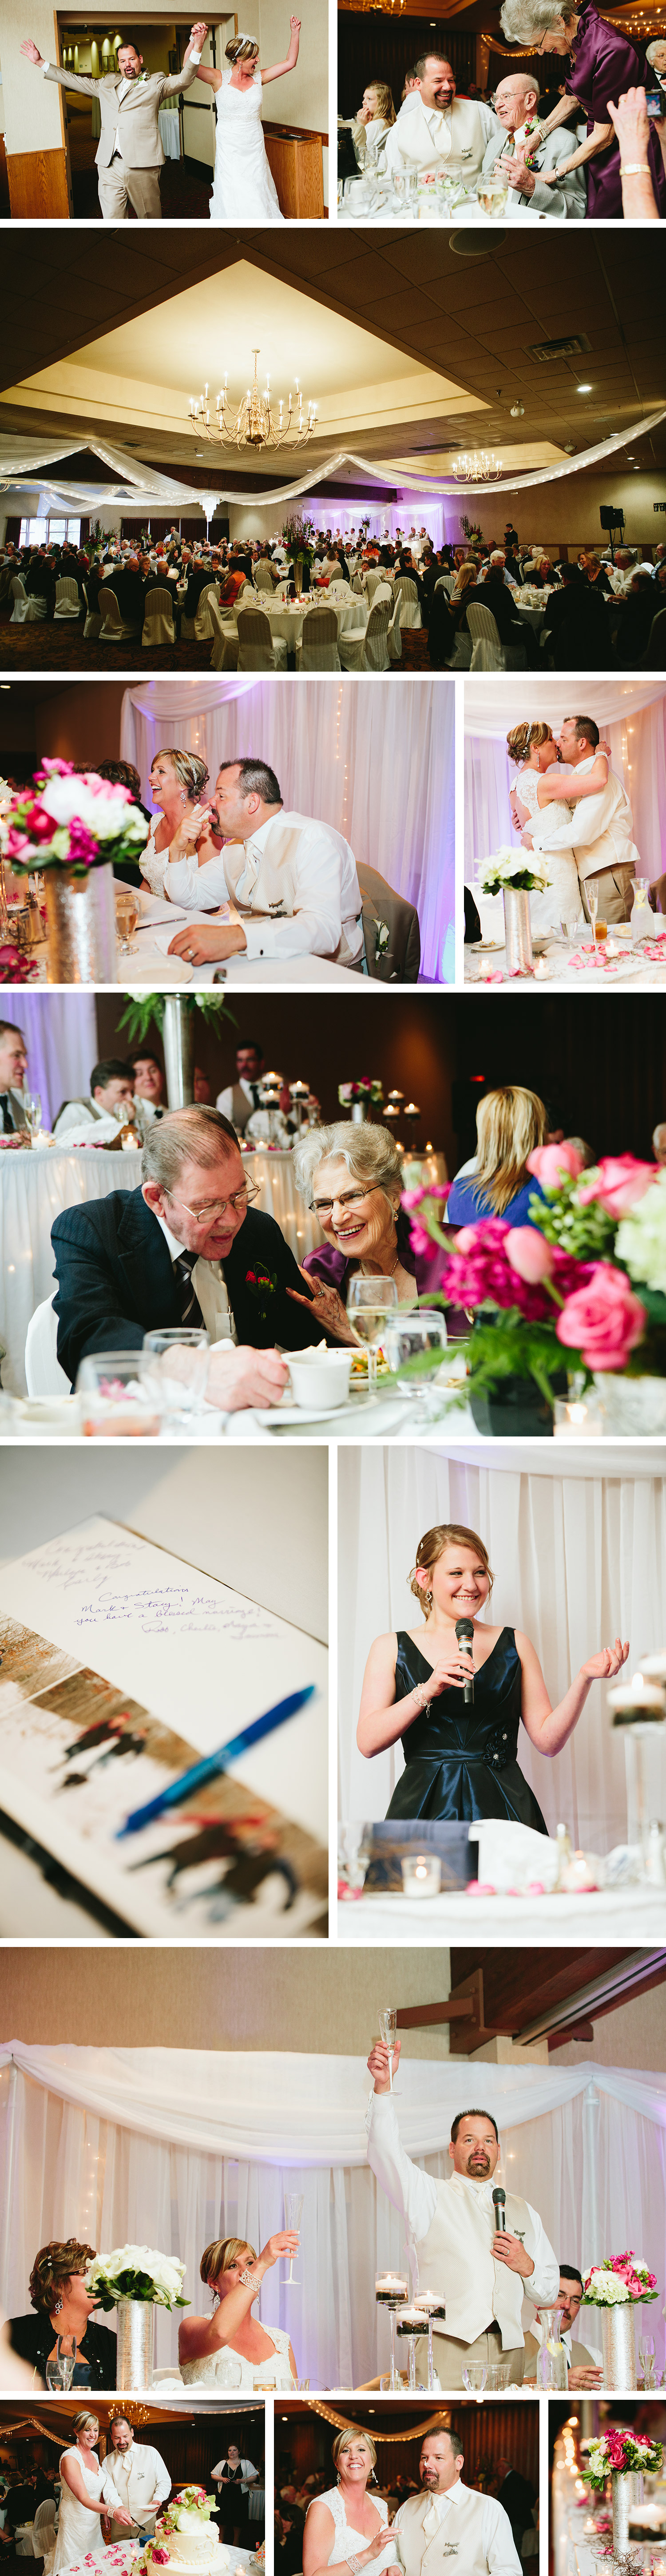 Breezy Point Resort wedding reception in the White Birch Room with decor by Celebrations Floral